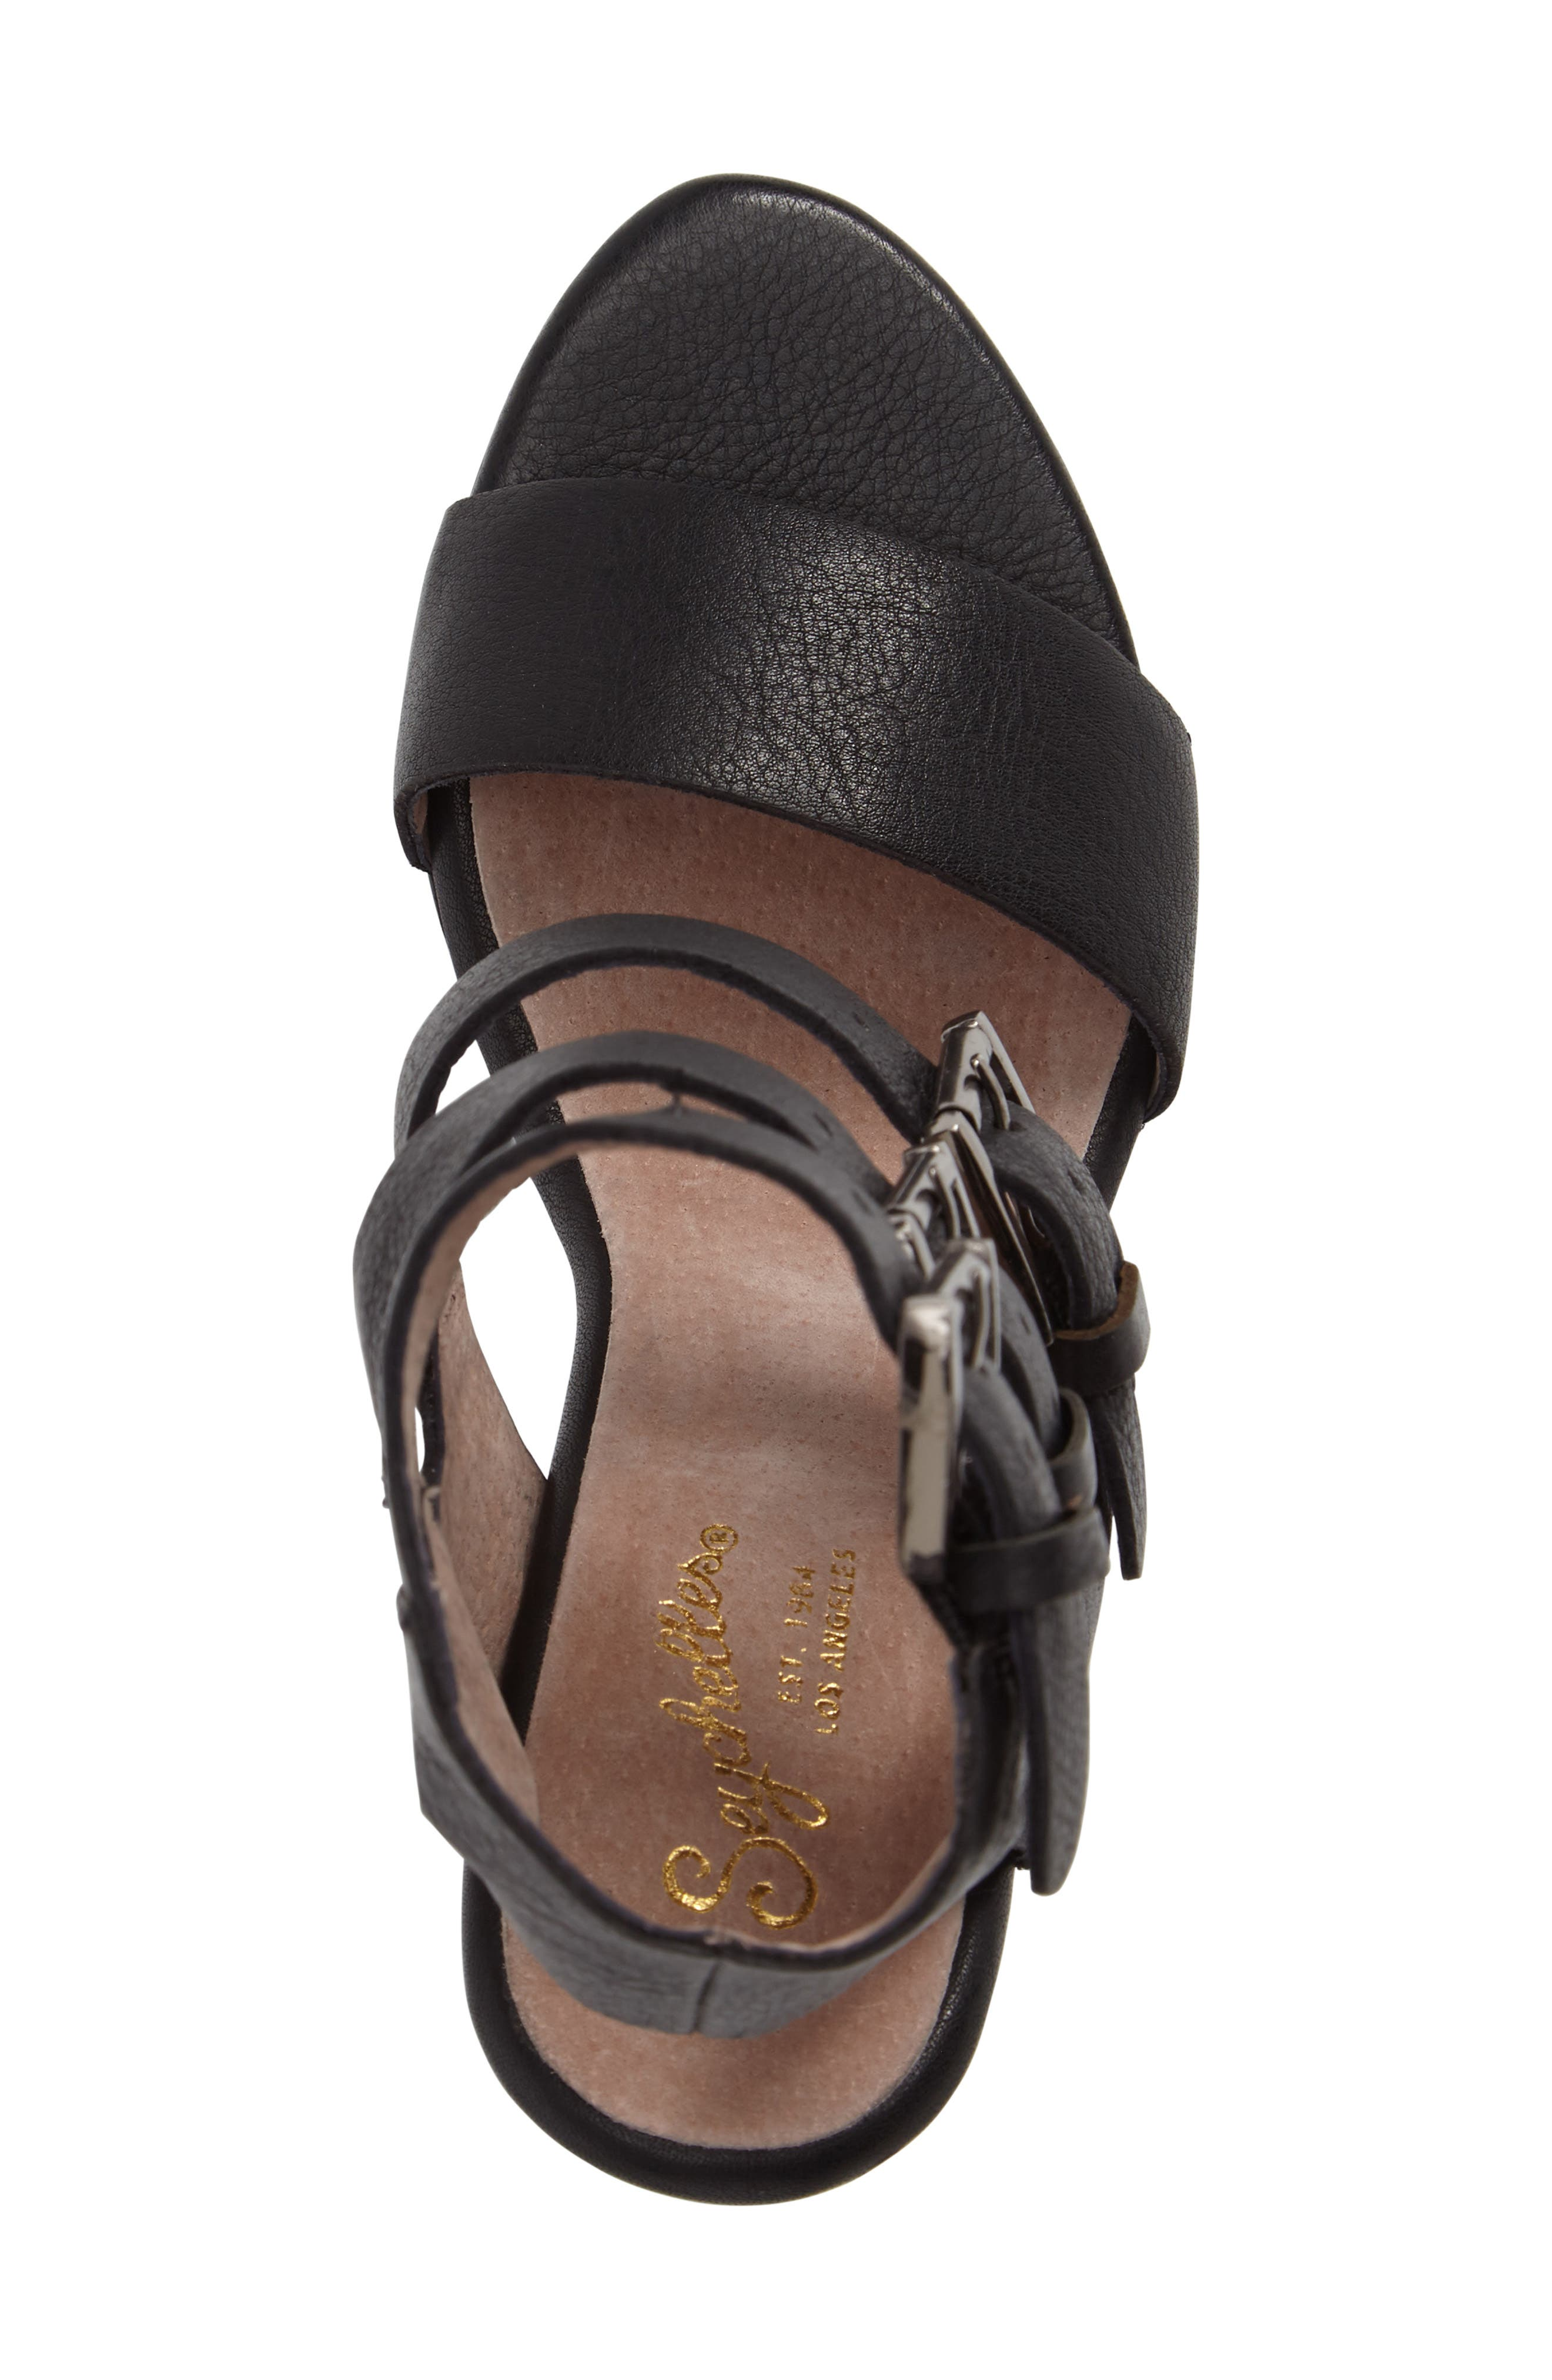 Dilly Dally Sandal,                             Alternate thumbnail 5, color,                             001